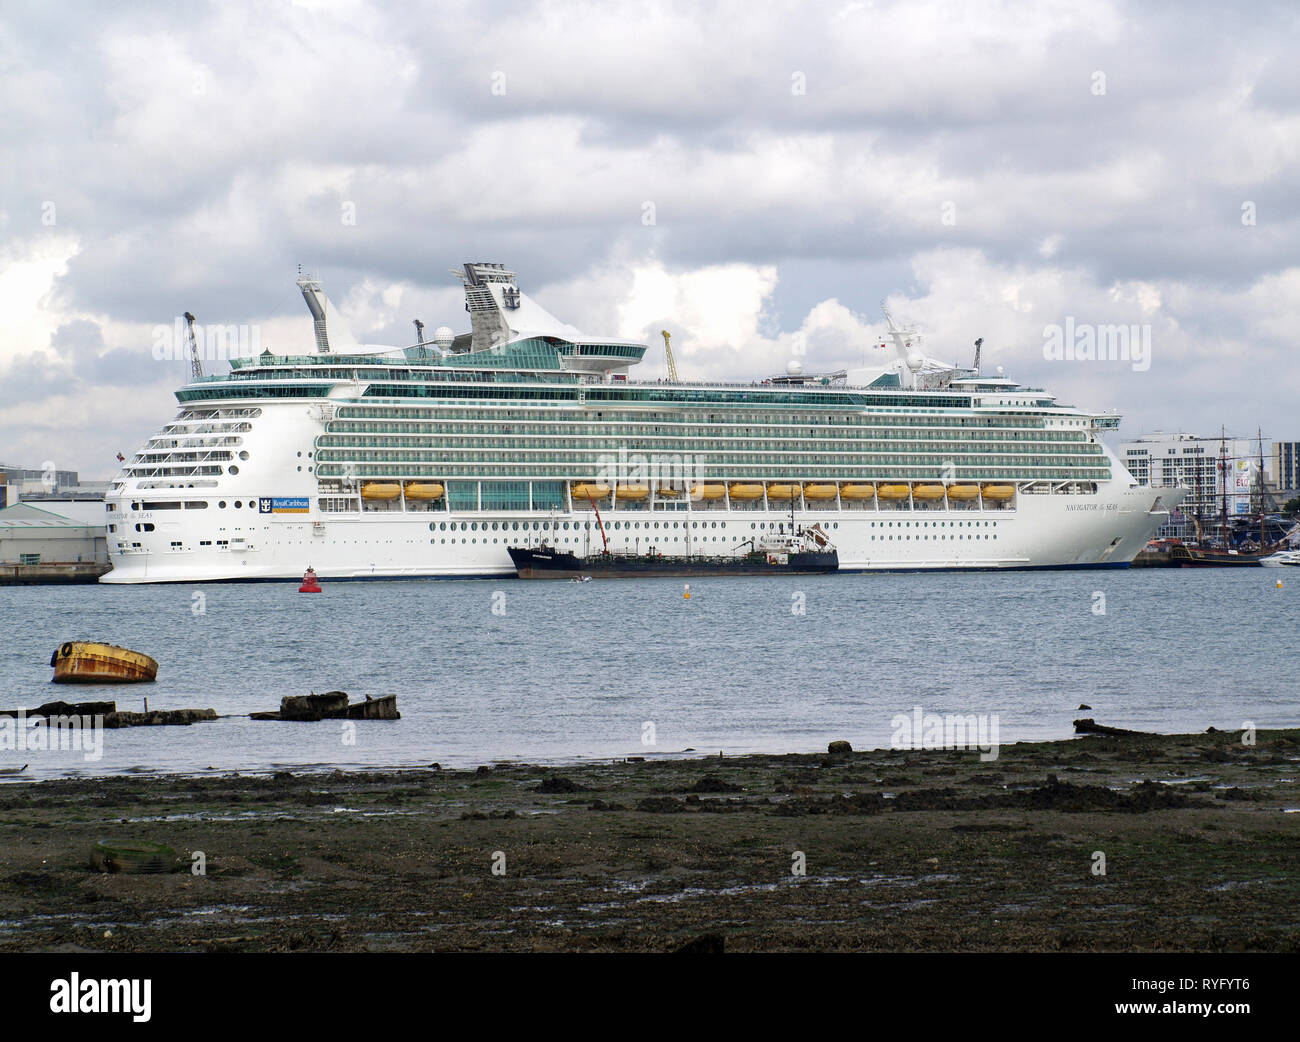 Royal Caribbean cruise liner, Navigator of the Seas being refuelled by tanker Whitmariner at Southampton Docks - Stock Image